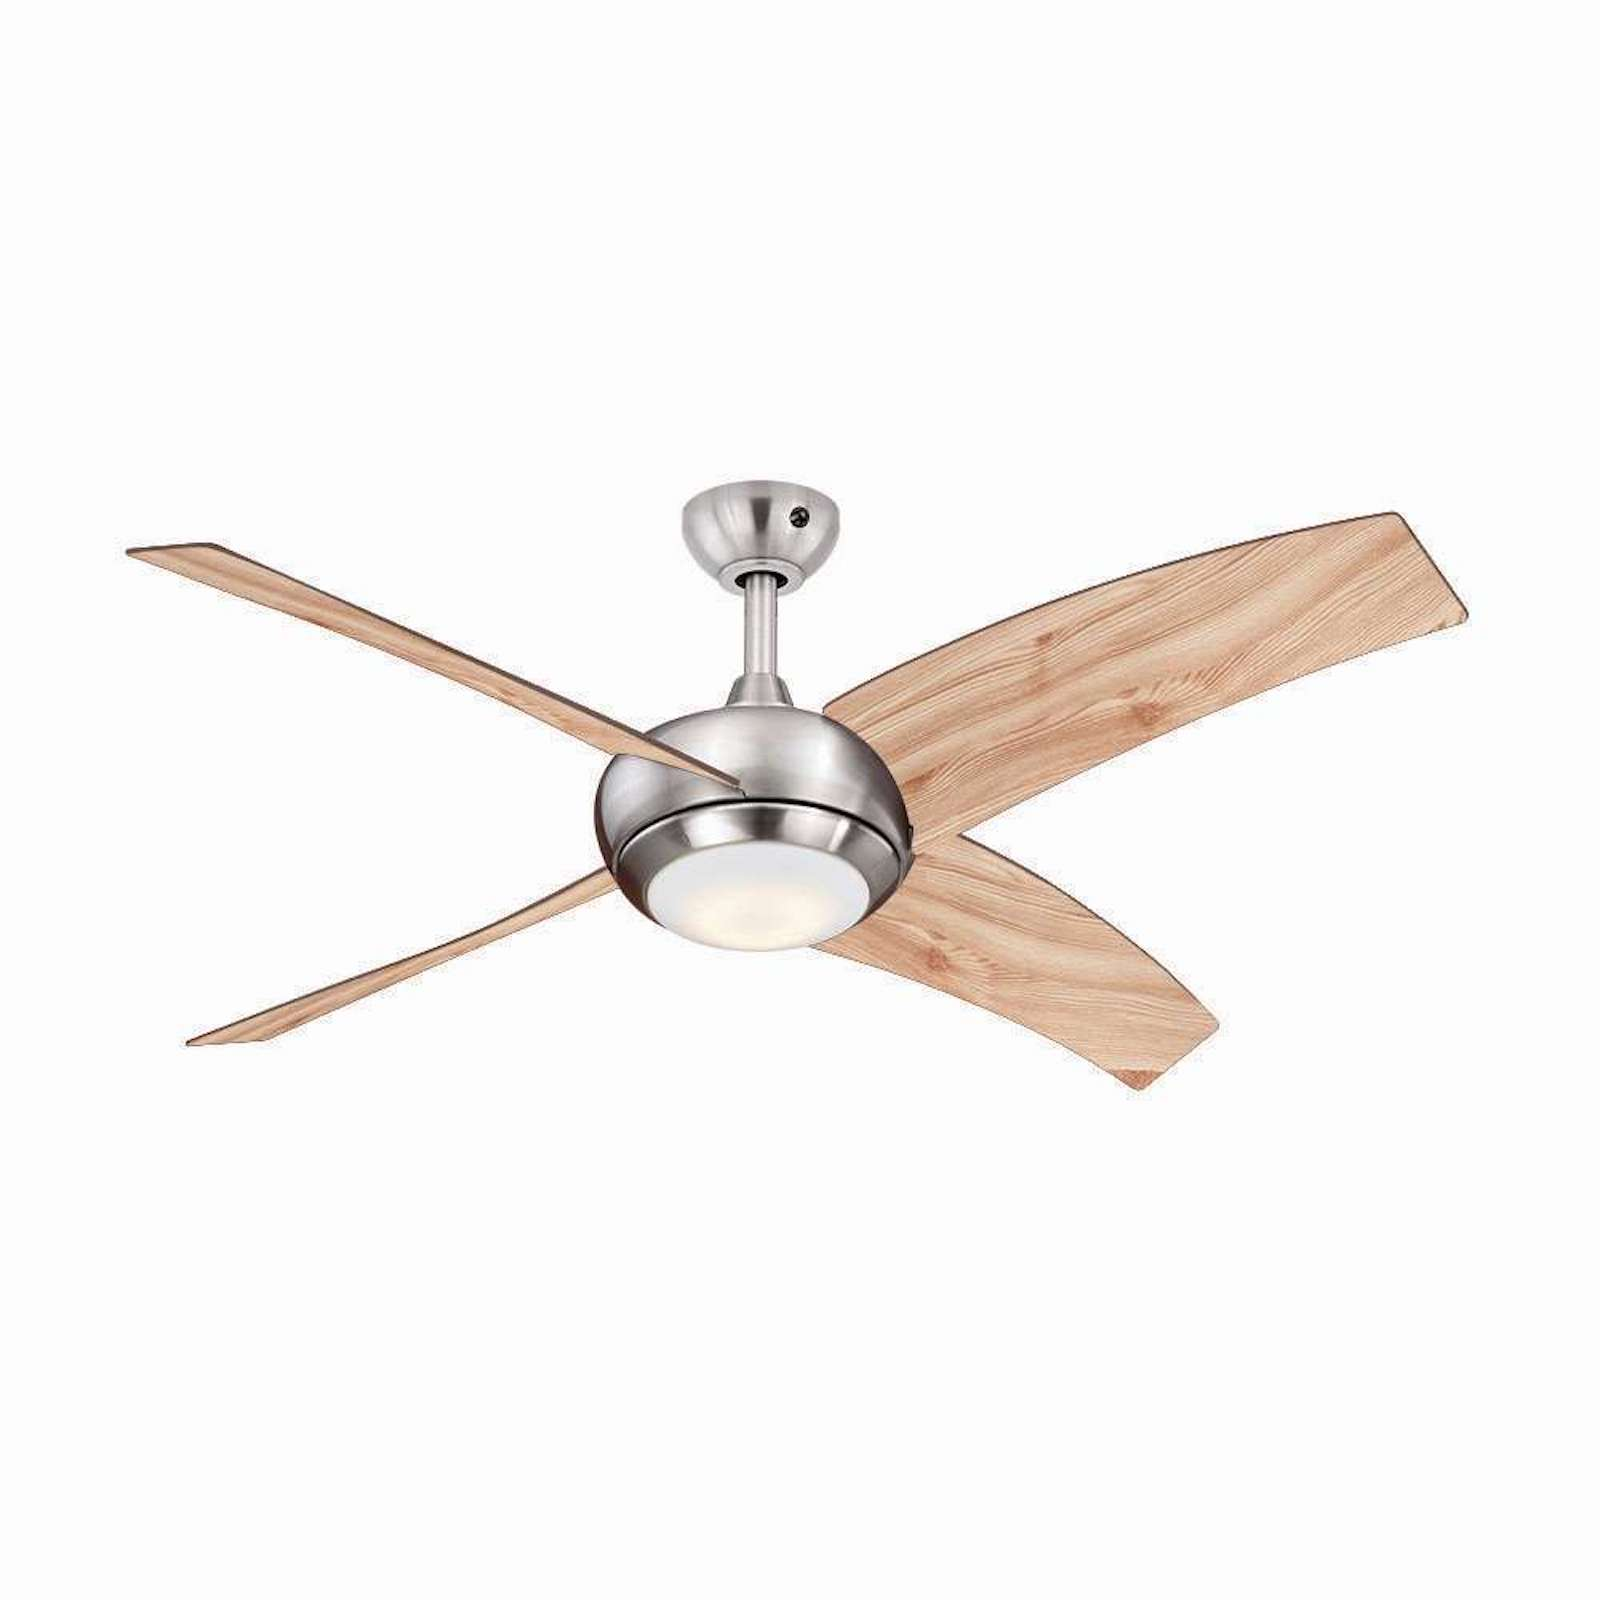 Remote Control Ceiling Fans With Led Lights Ceiling Fan Borealis Pine With Led And Remote Control